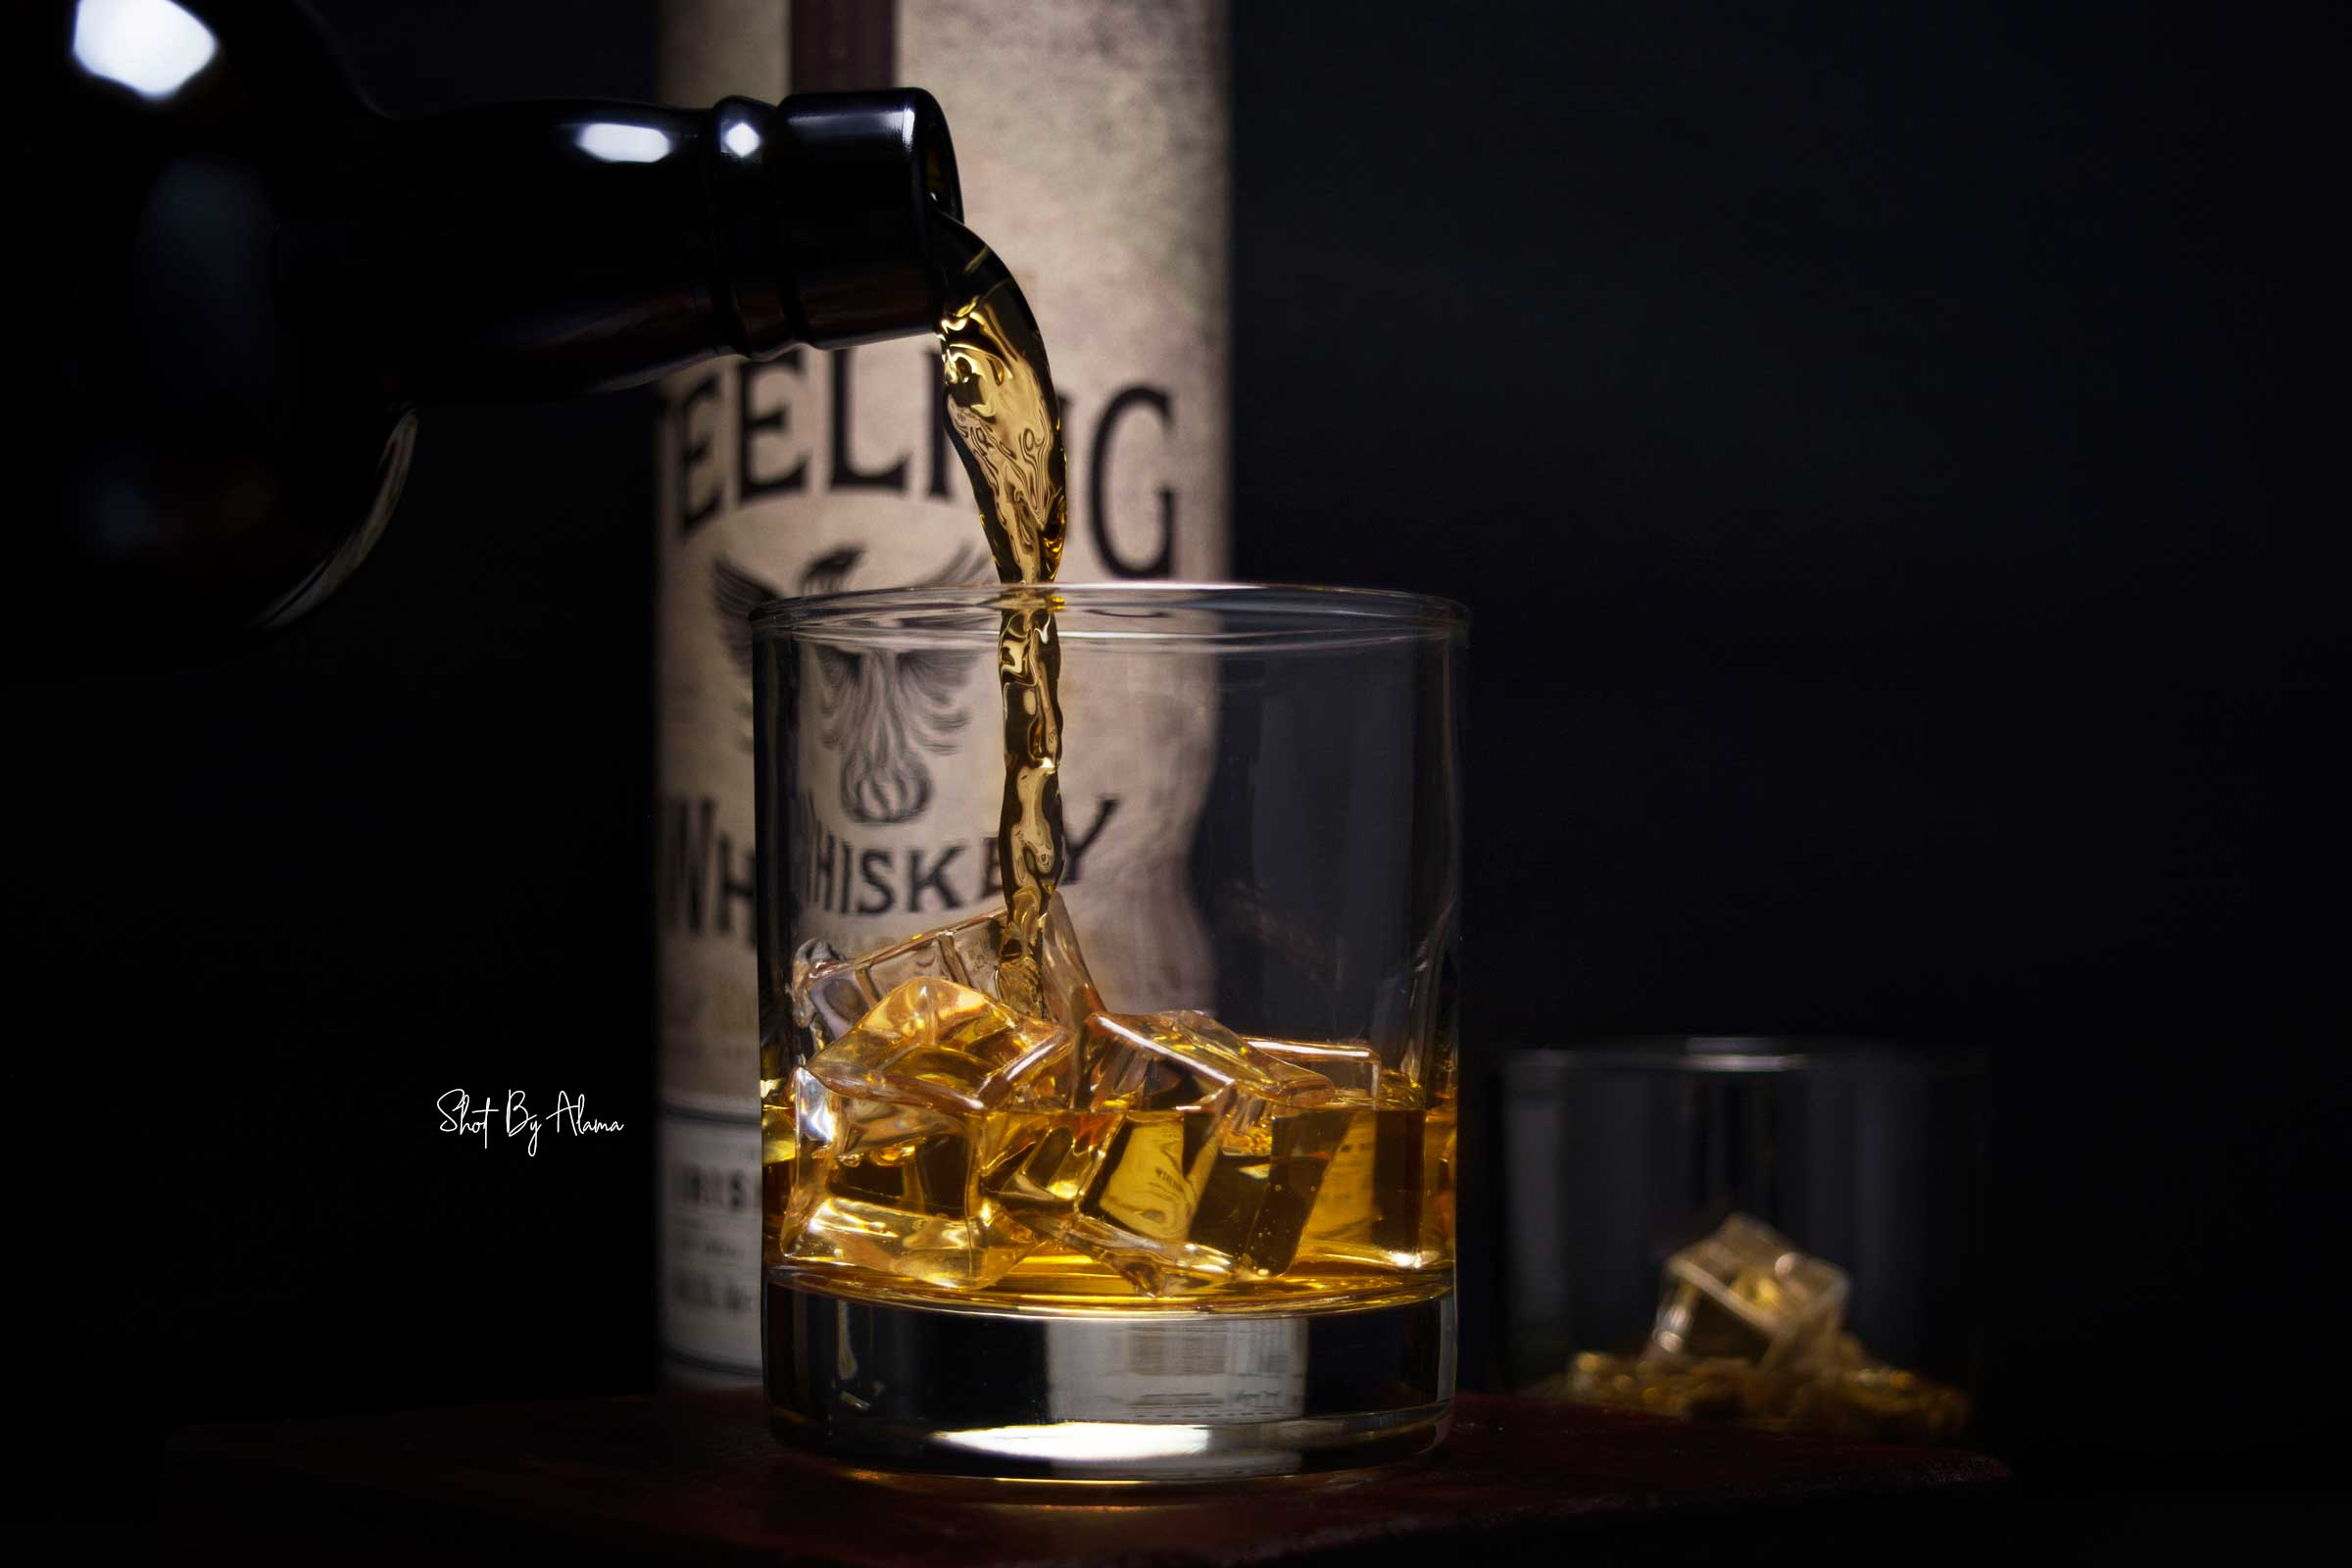 Teeling Whiskey - Kenyan Product and Food Photographers, Kenyan Commercial Photography